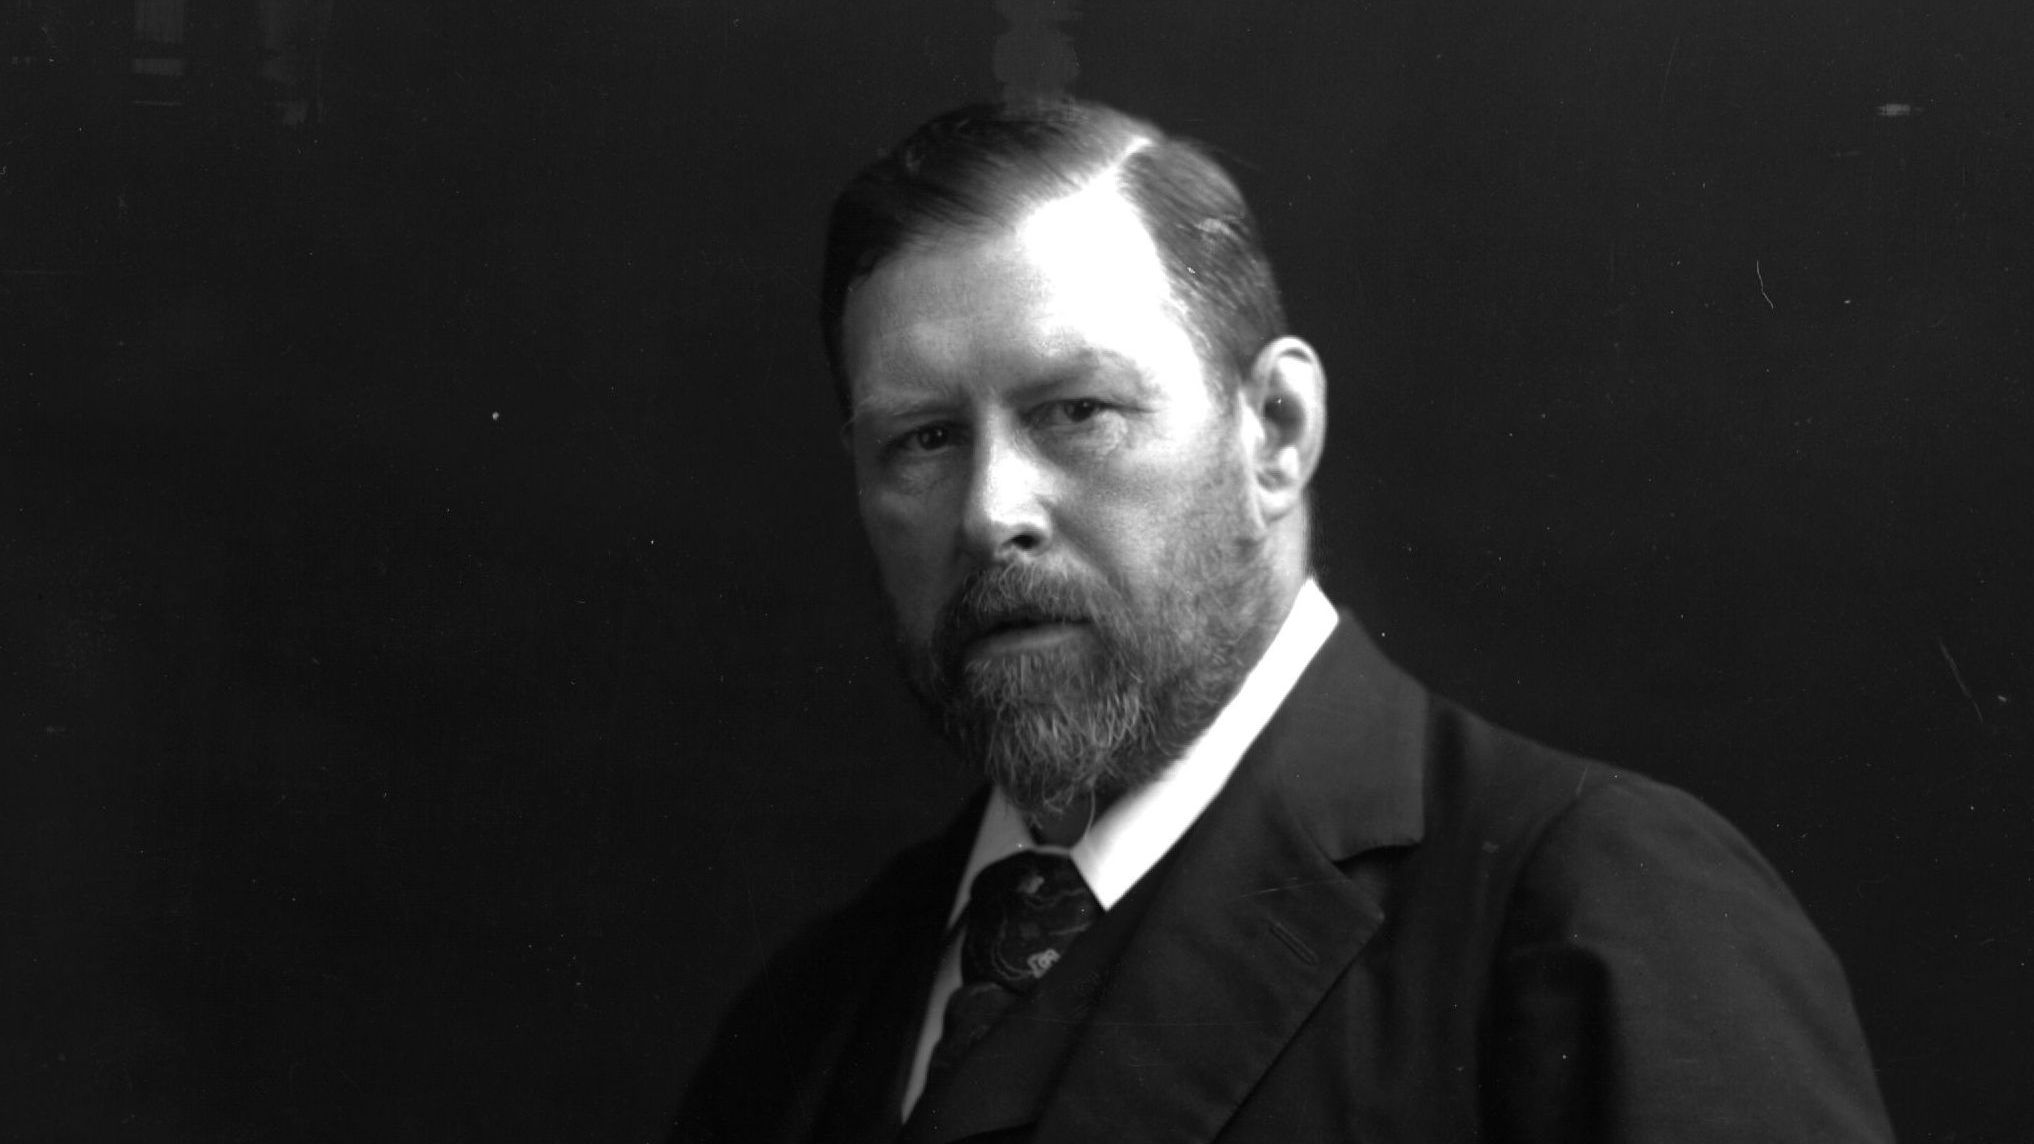 Biography of Bram Stoker, Irish Author